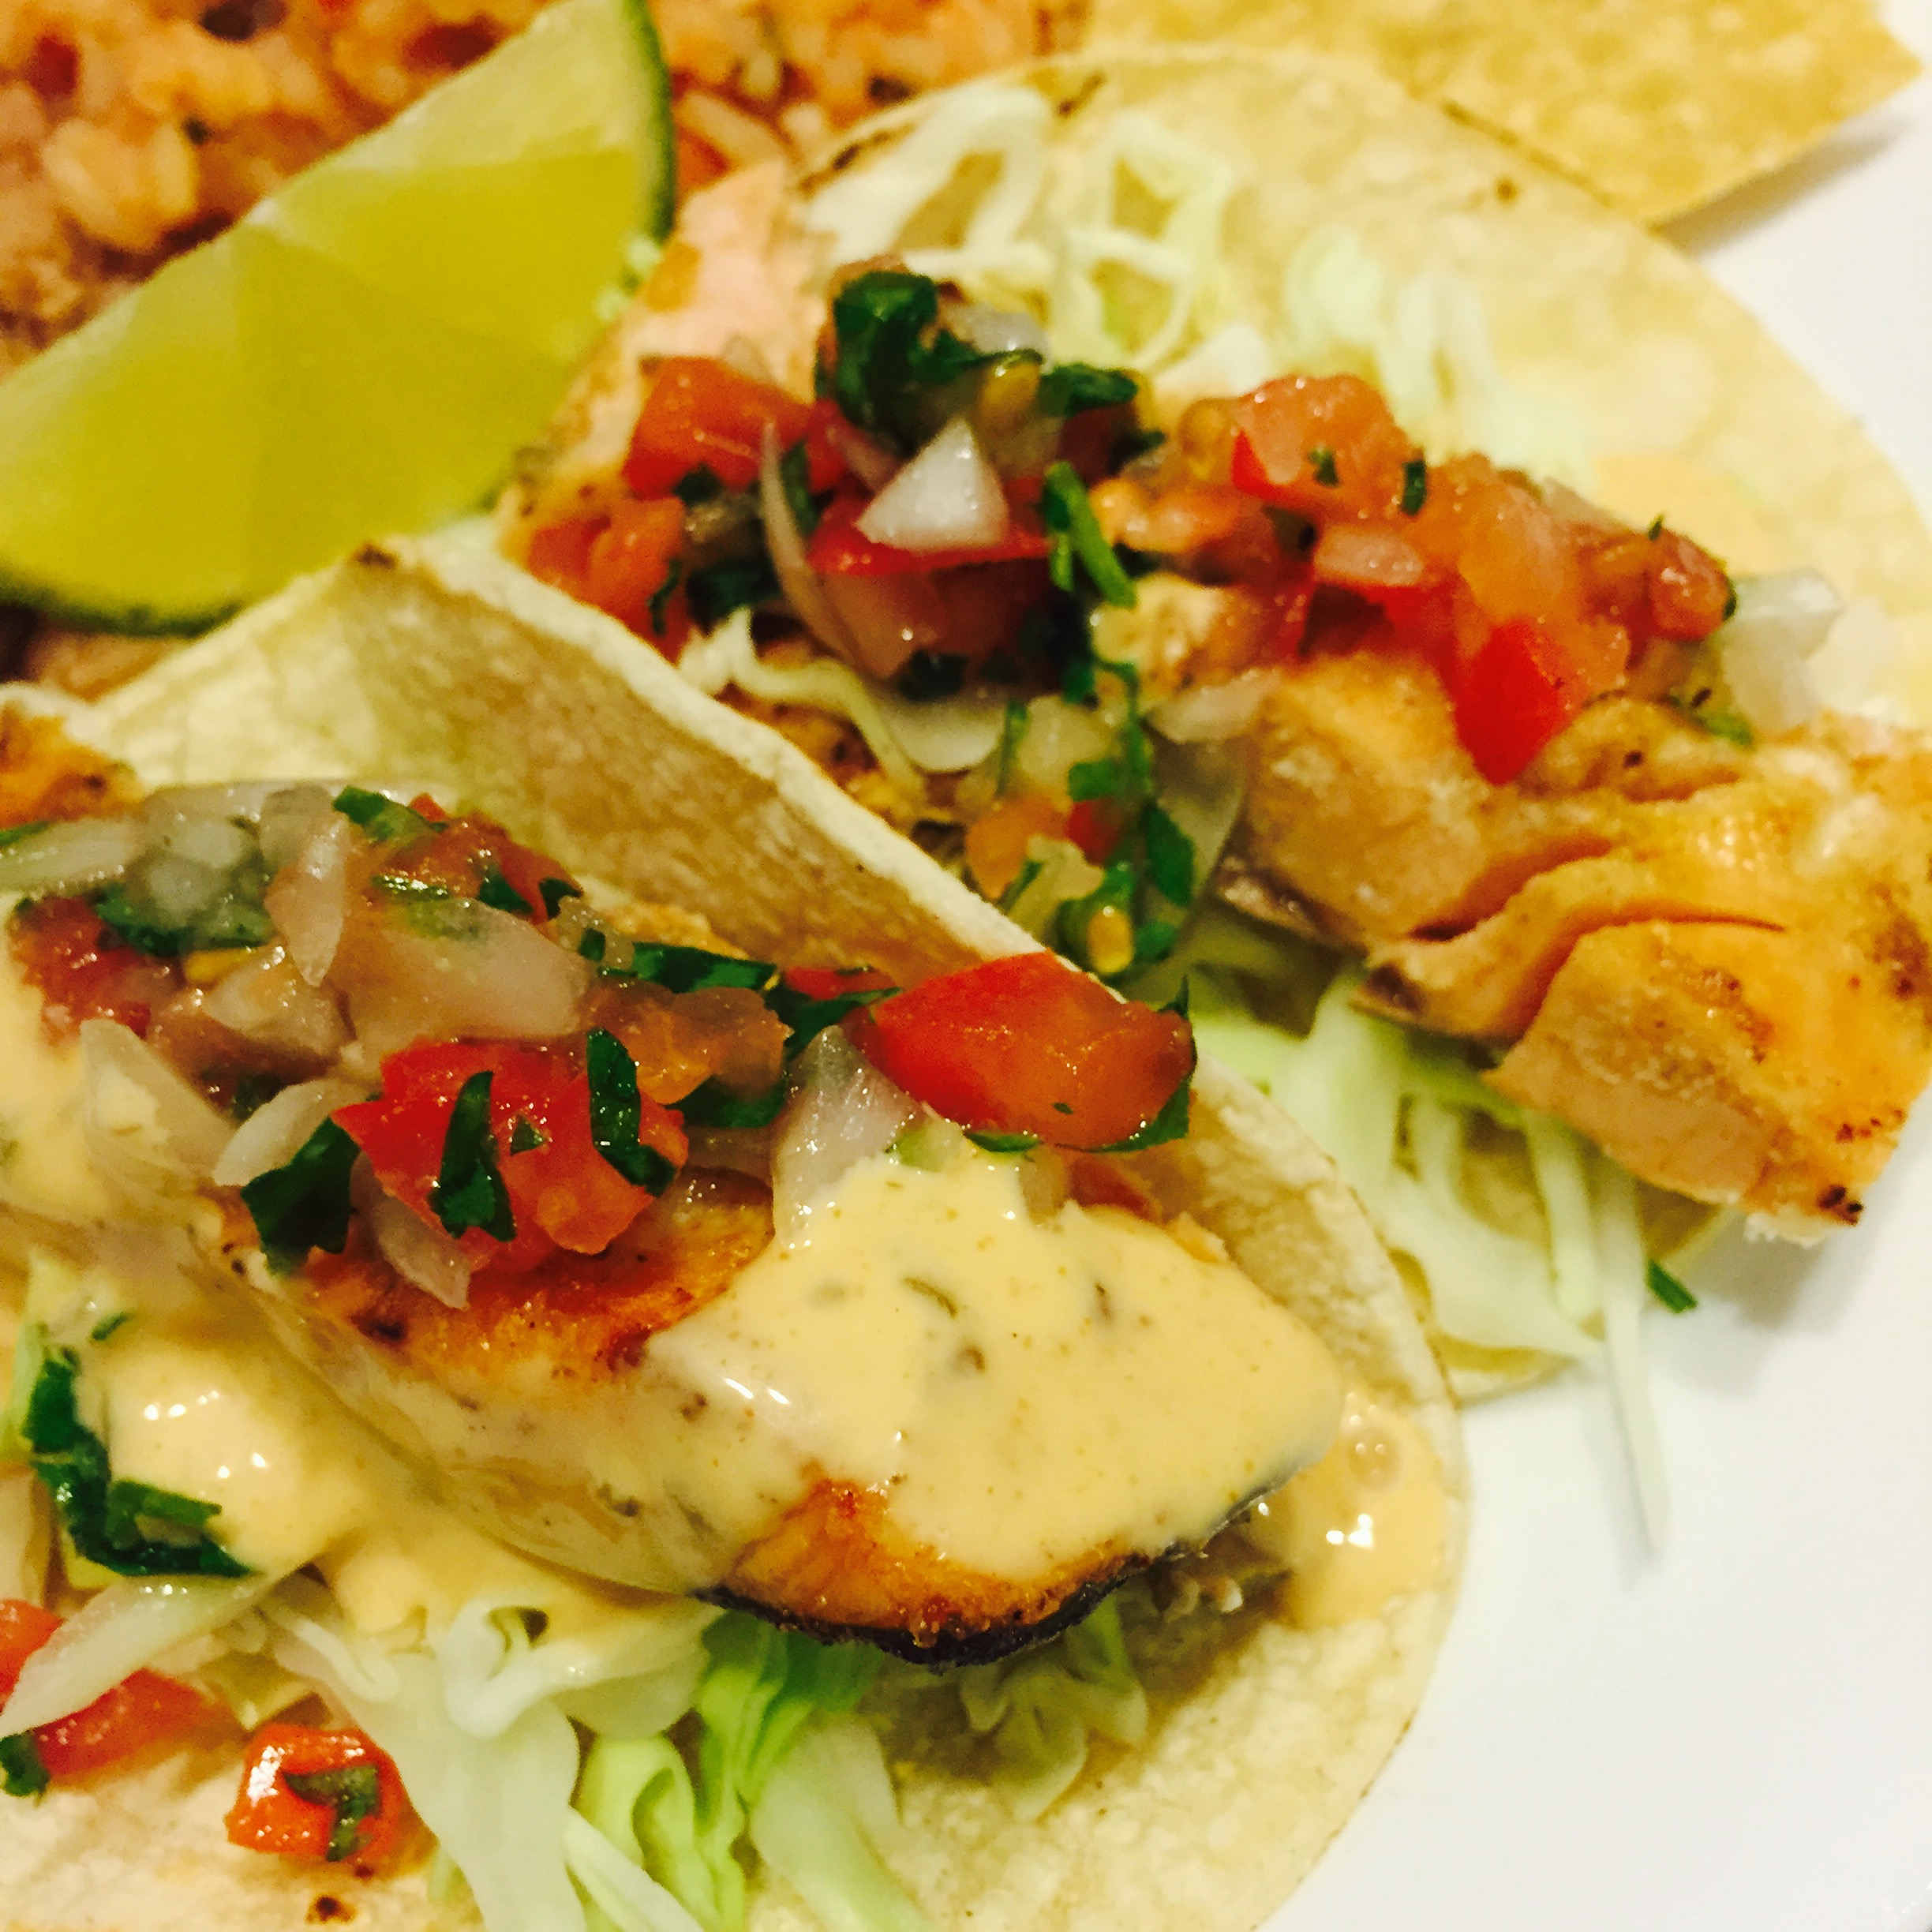 Fish Tacos With Chipotle Slaw